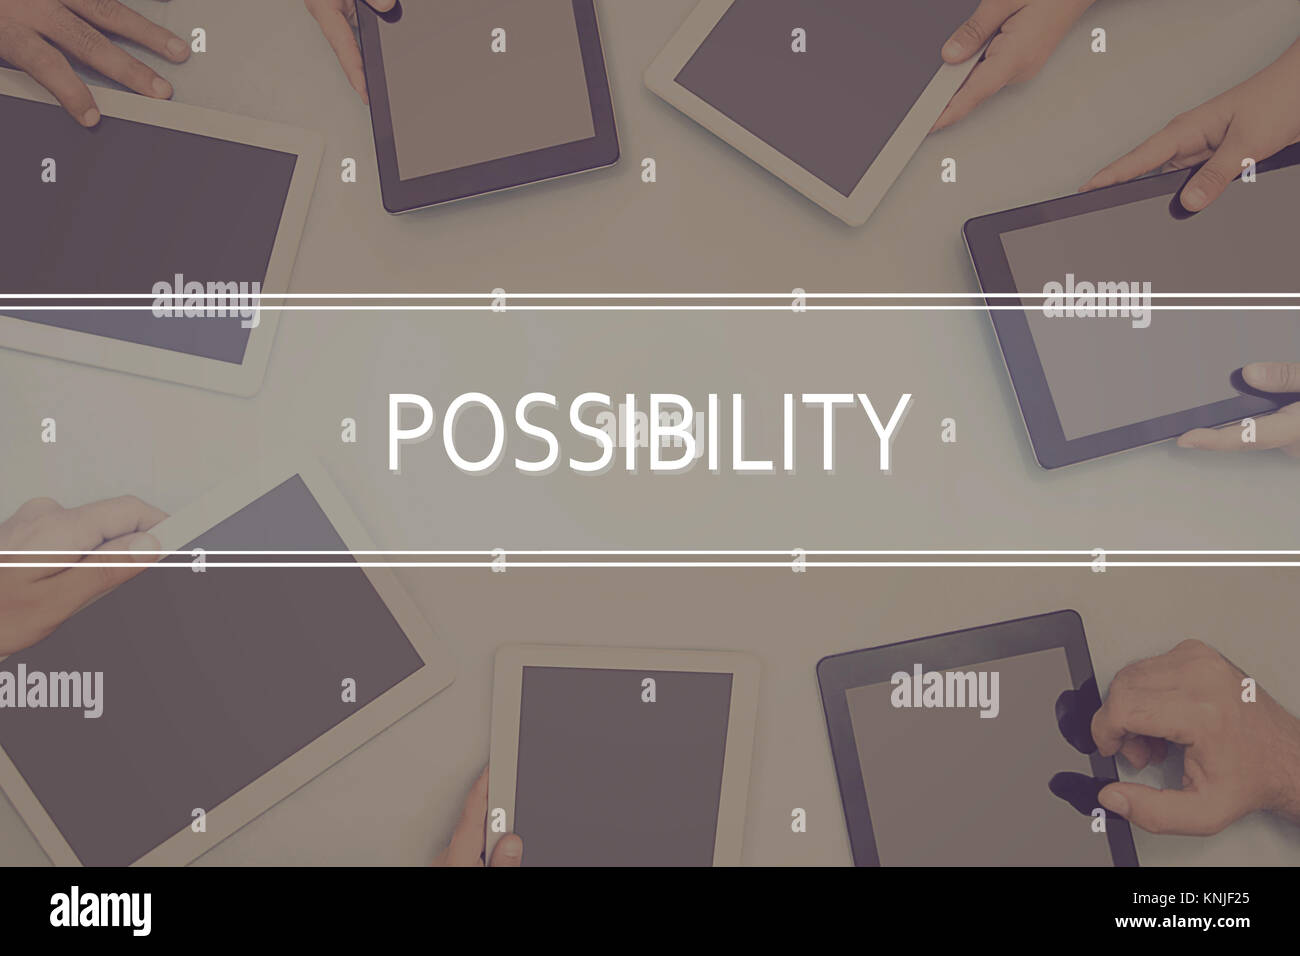 POSSIBILITY CONCEPT Business Concept. - Stock Image